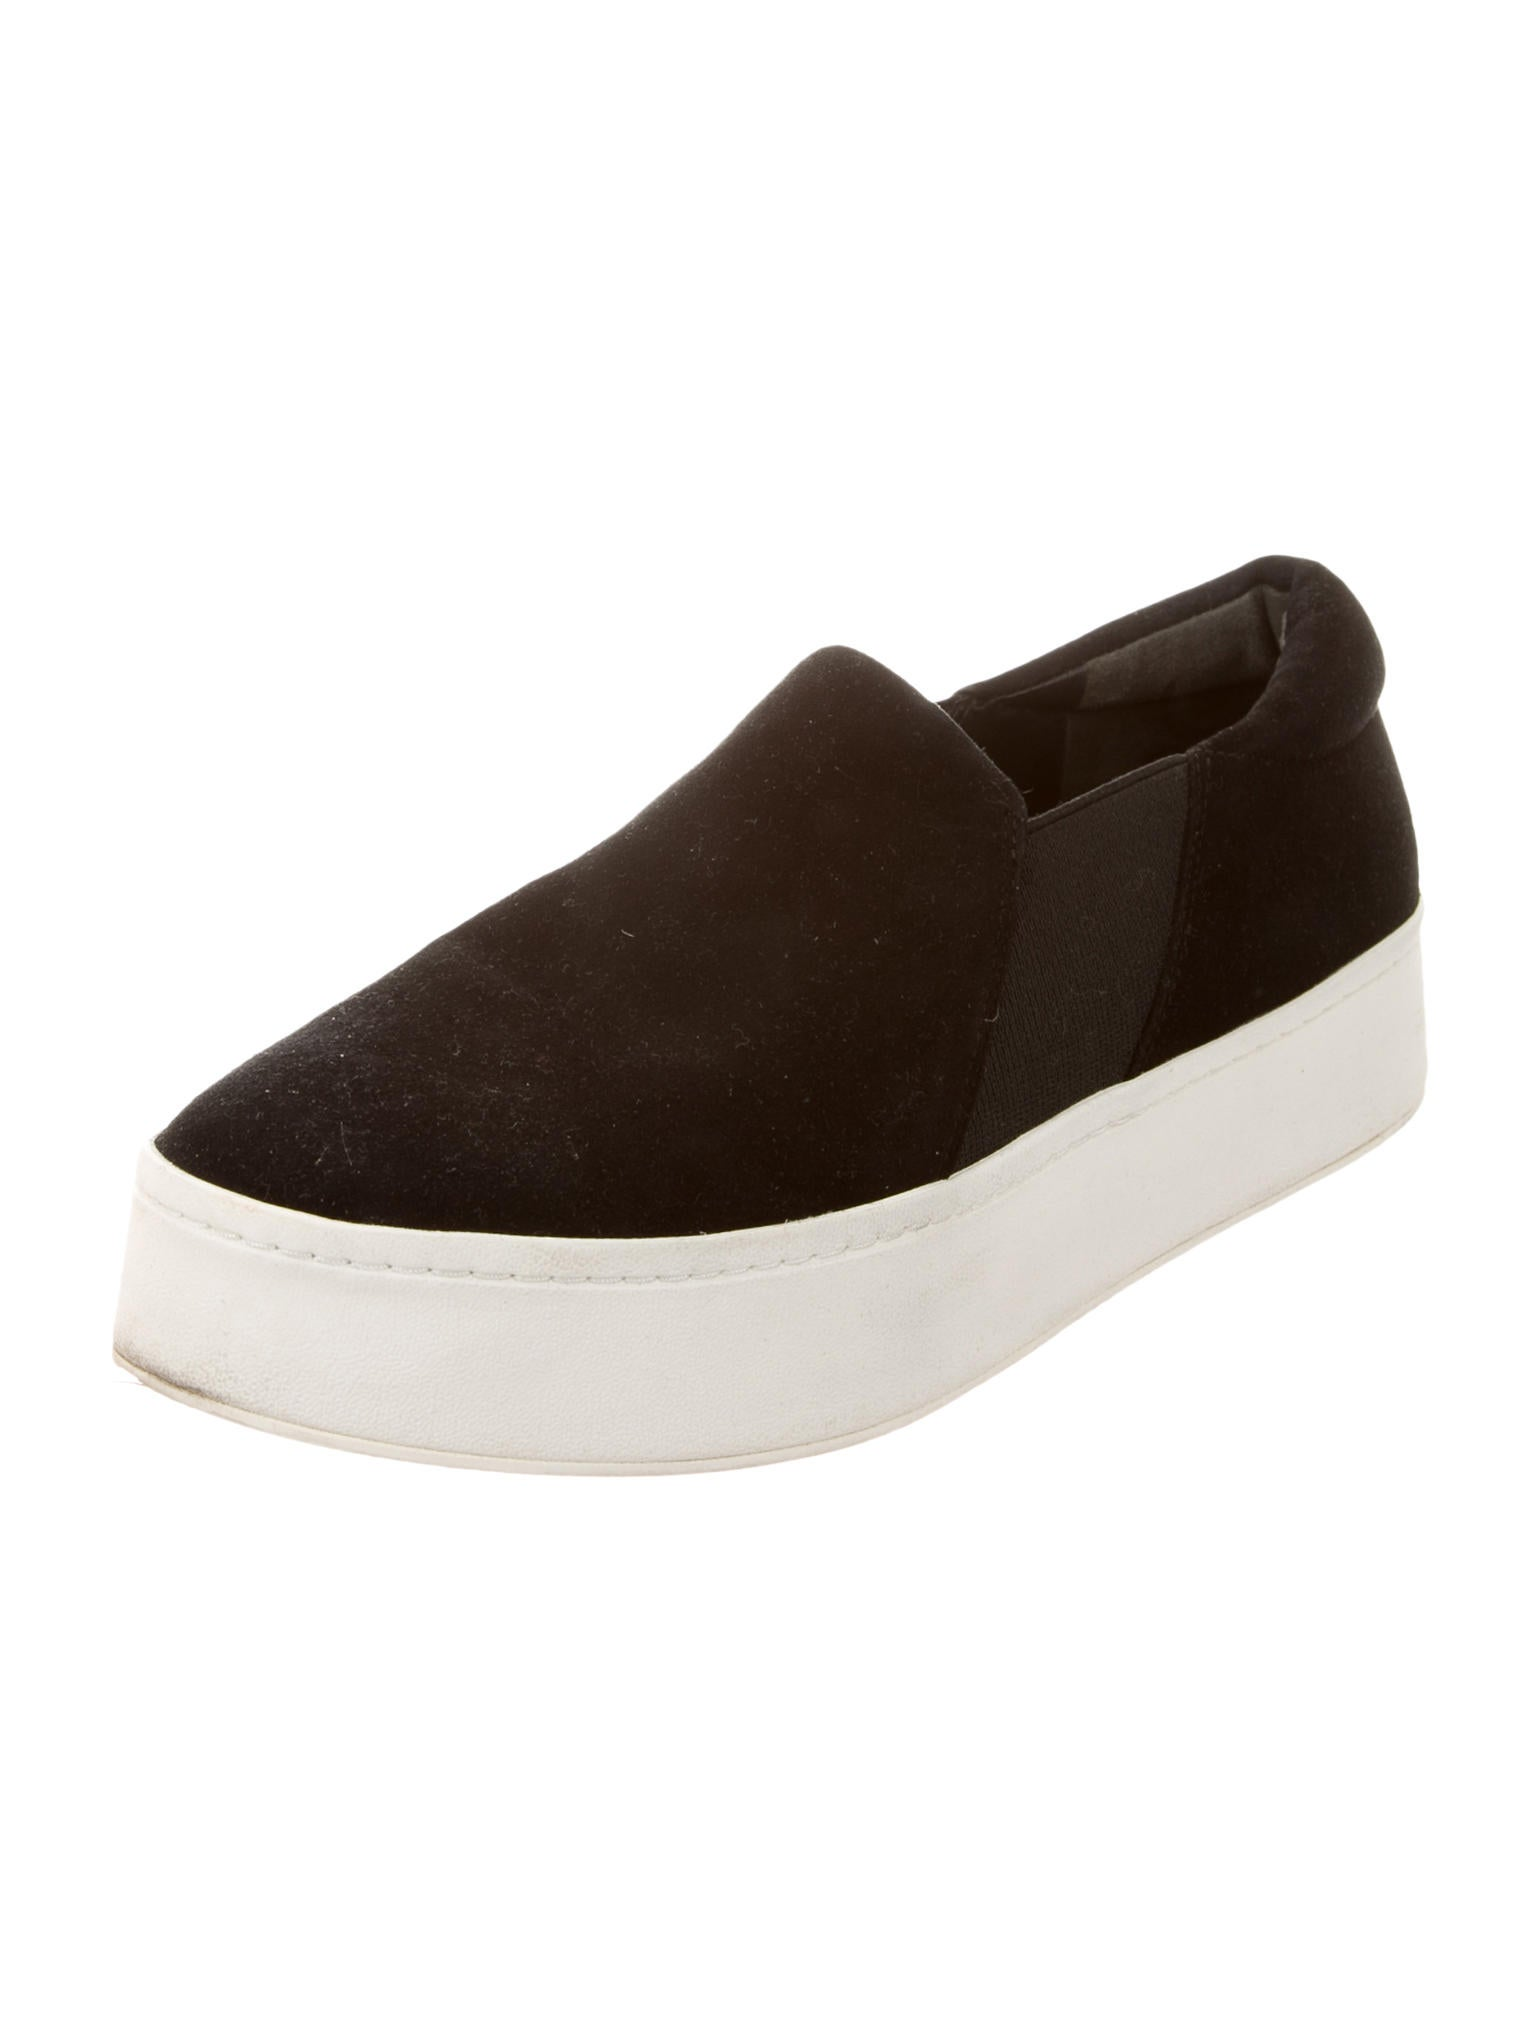 vince suede slip on sneakers shoes wvn25260 the realreal